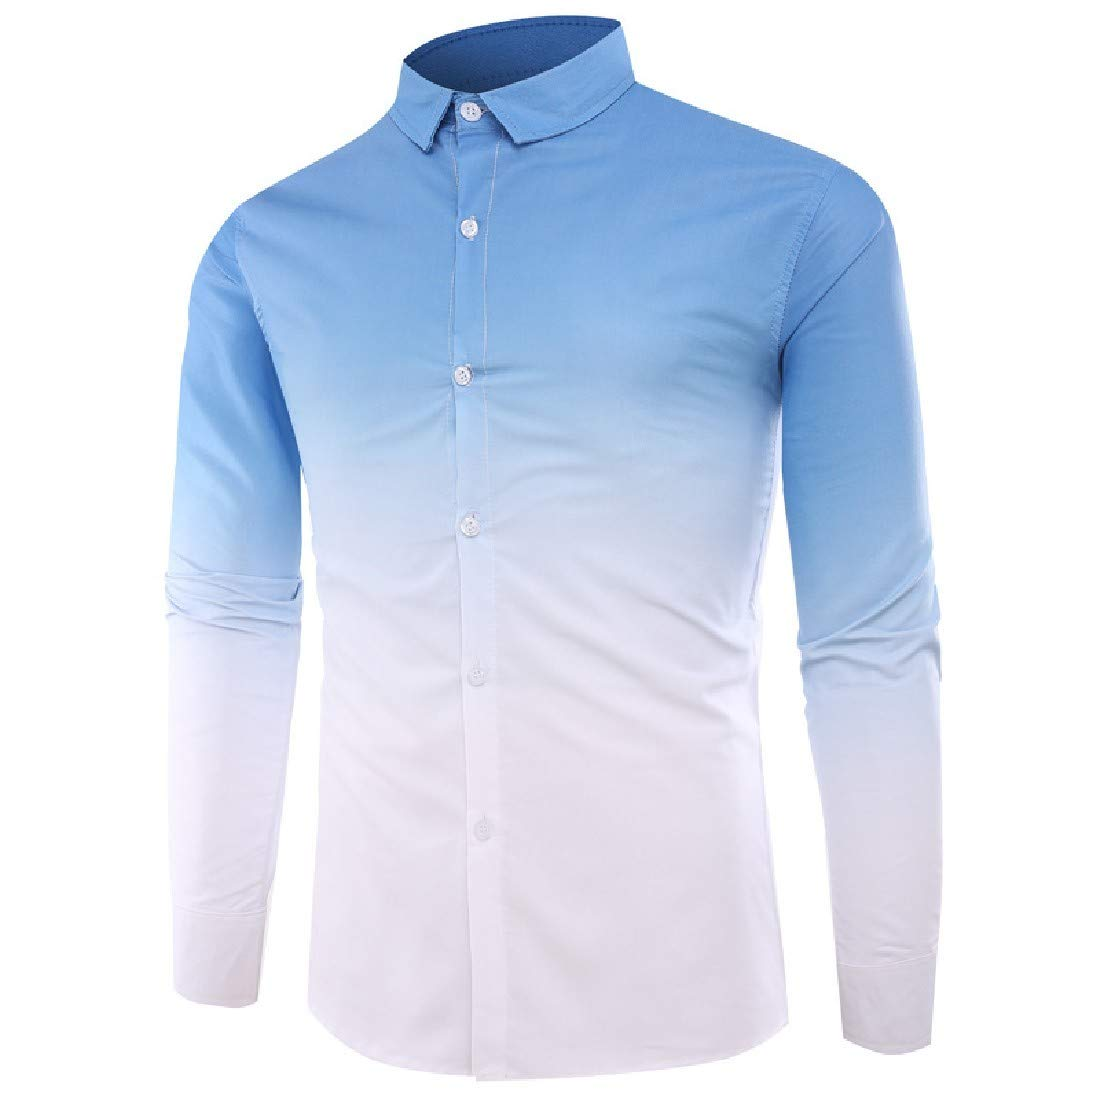 YUNY Mens Spring Oversize Ombre Long-Sleeve Tees Top Shirts Light Blue L